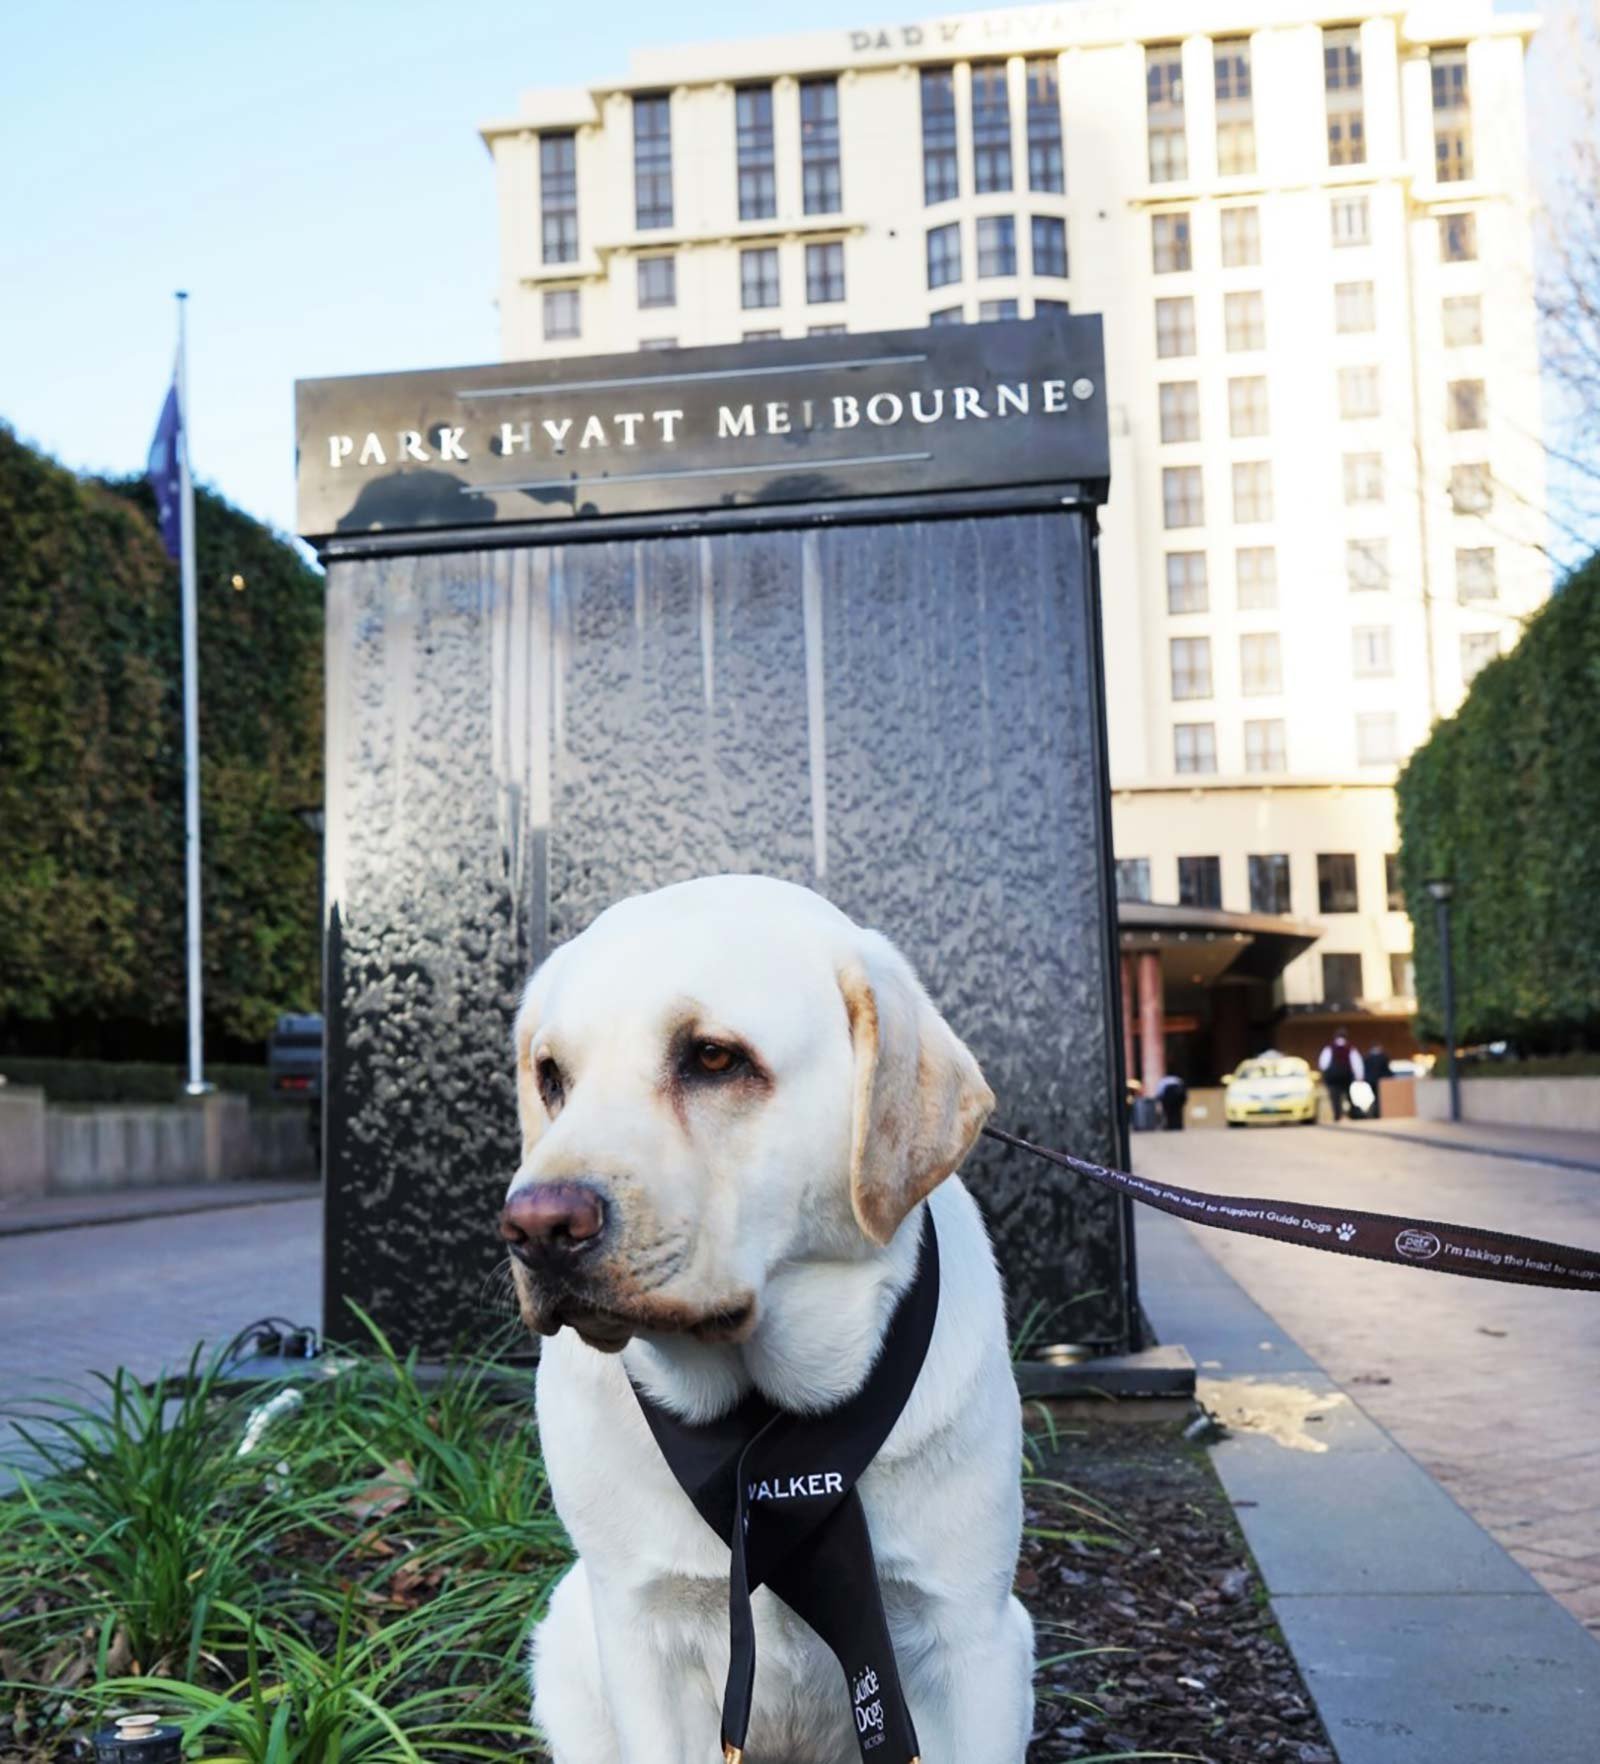 Mr Walker Canine Ambassador Service Dog Park Hyatt Melbourne Hotel Staff